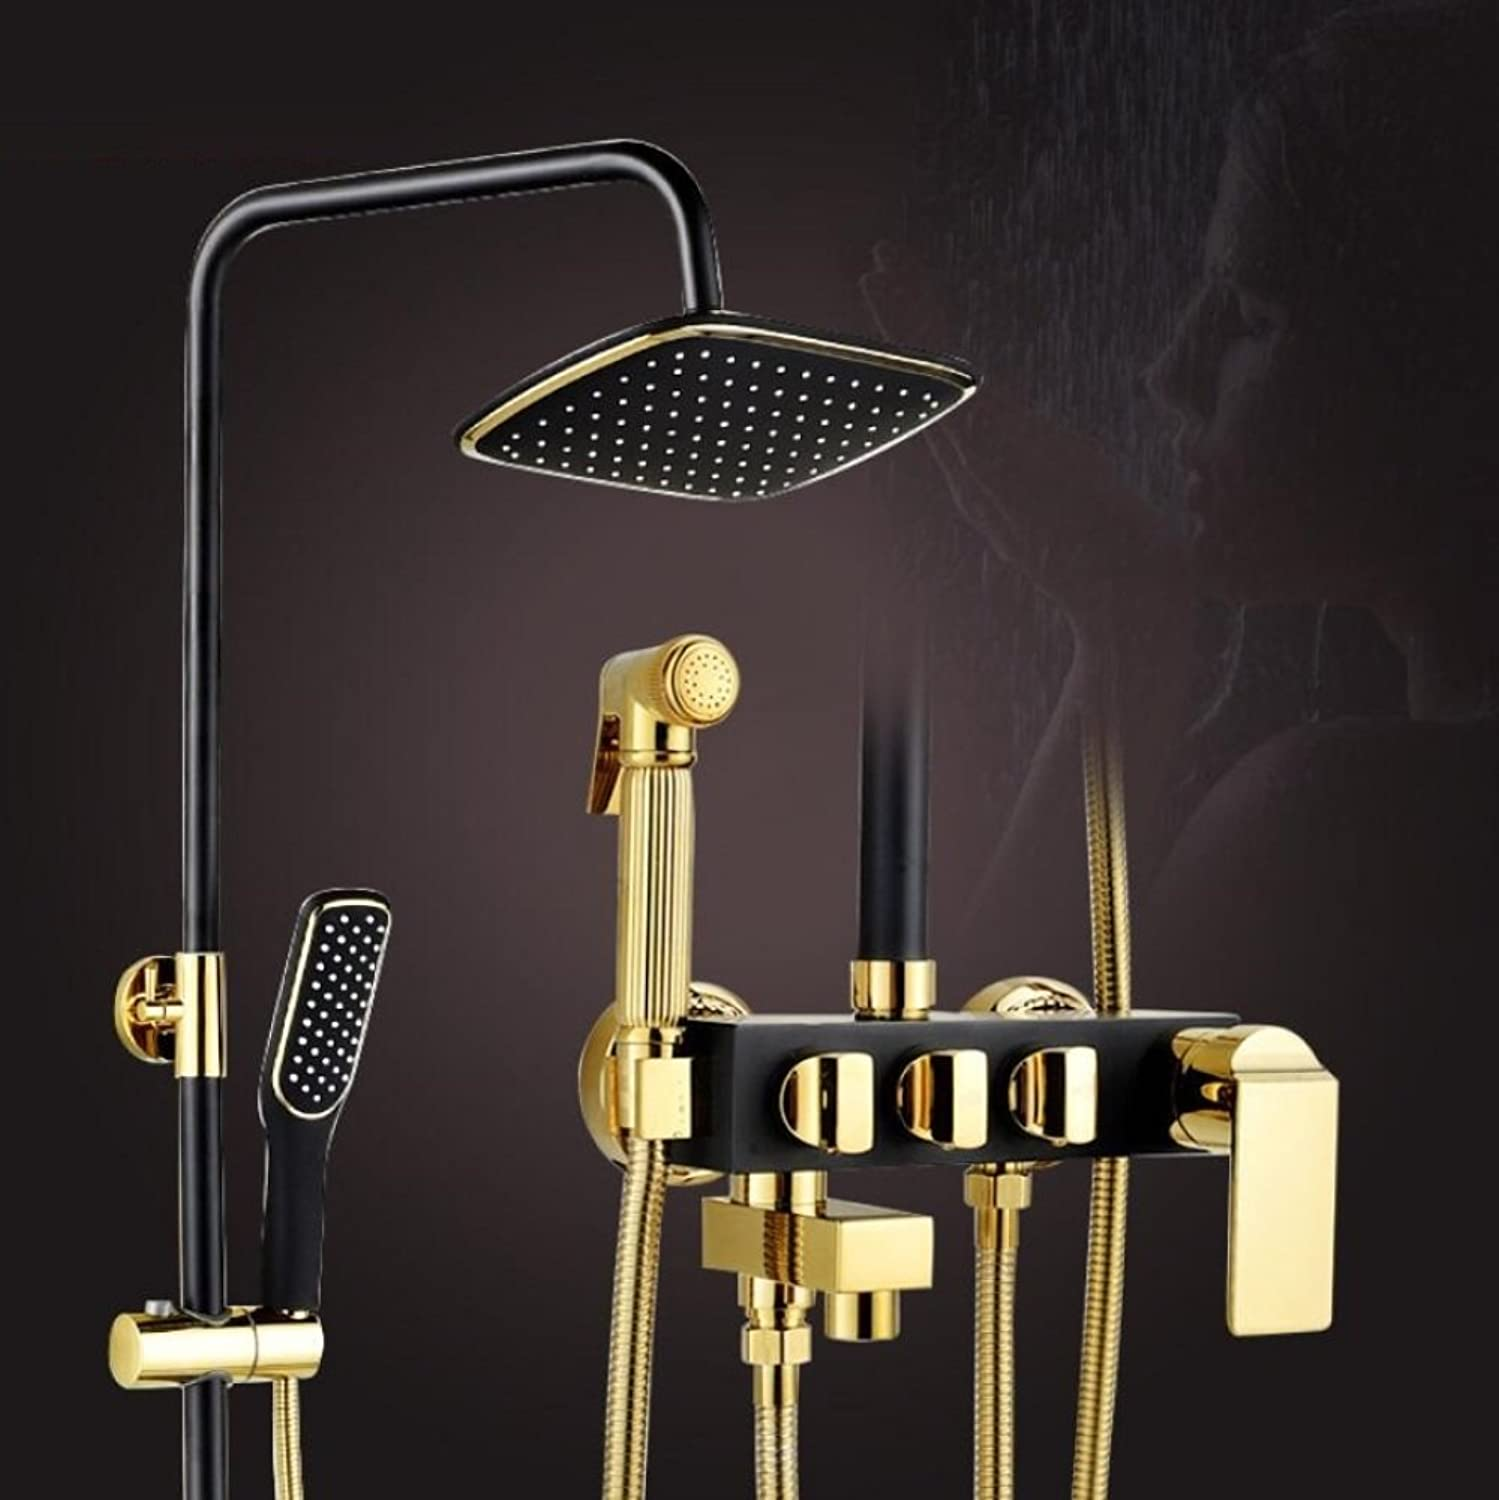 ZHFC Bathroom Shower System,European Adjustable Rainfall Waterfall Shower Head Faucet Rain Massage Brass faucet Shower set black plating